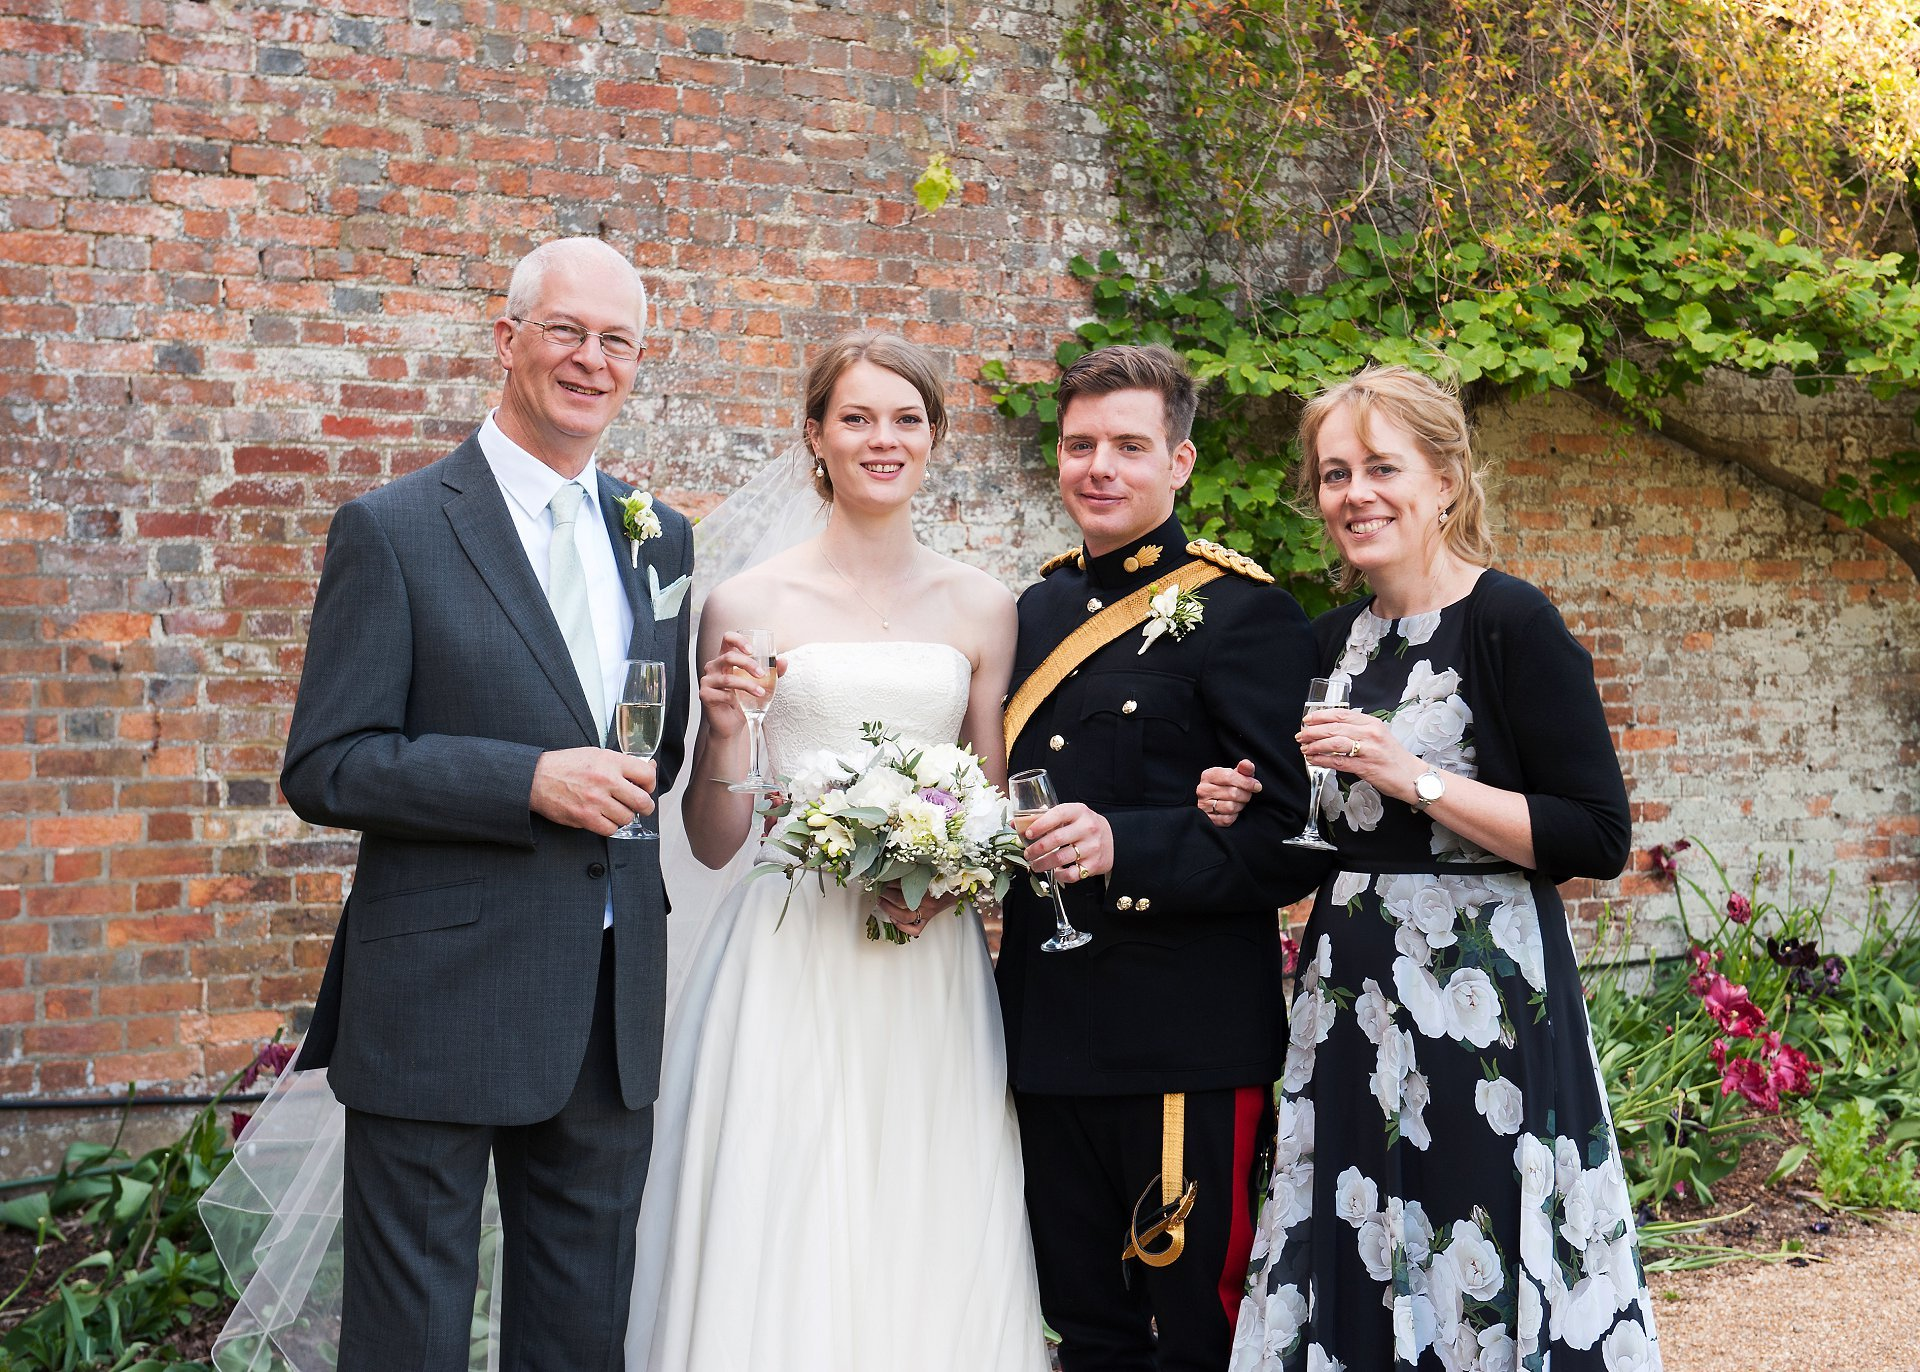 Brides family in a family group photograph at Starborough Manor